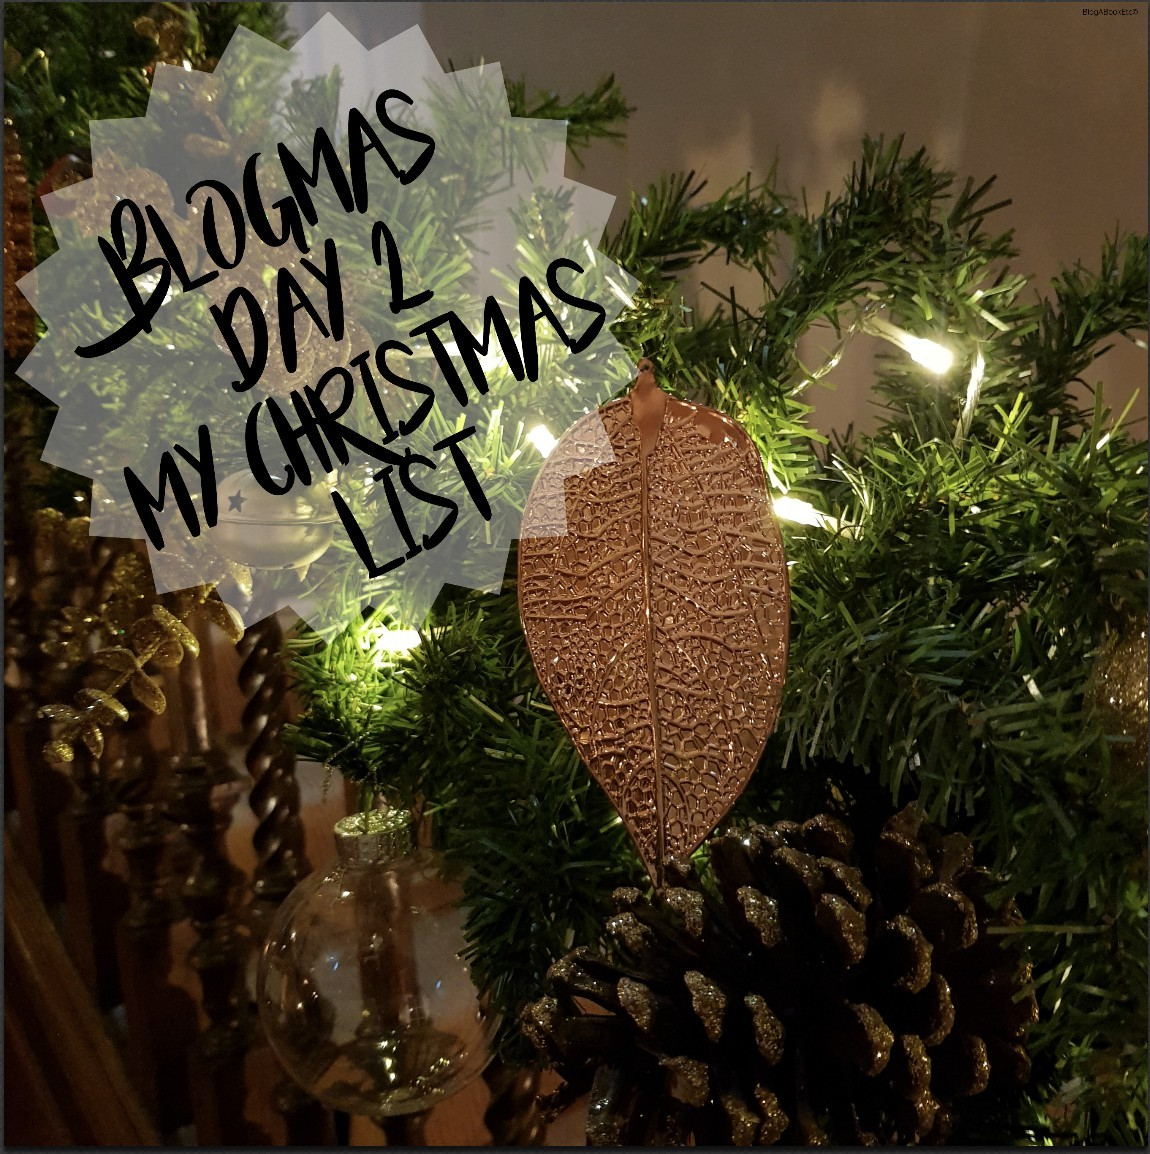 BlogMas, Christmas, Blogger, Blogging, Blog Post, Christmas Time, Xmas, Festive, Festive Season, Festive Period, Christmas Decorations, BlogMas Day 2, My Christmas List, Christmas List, Lists, To Do, Activities, Festive Activities, Winter, Cold, Blog A Book Etc, Fay